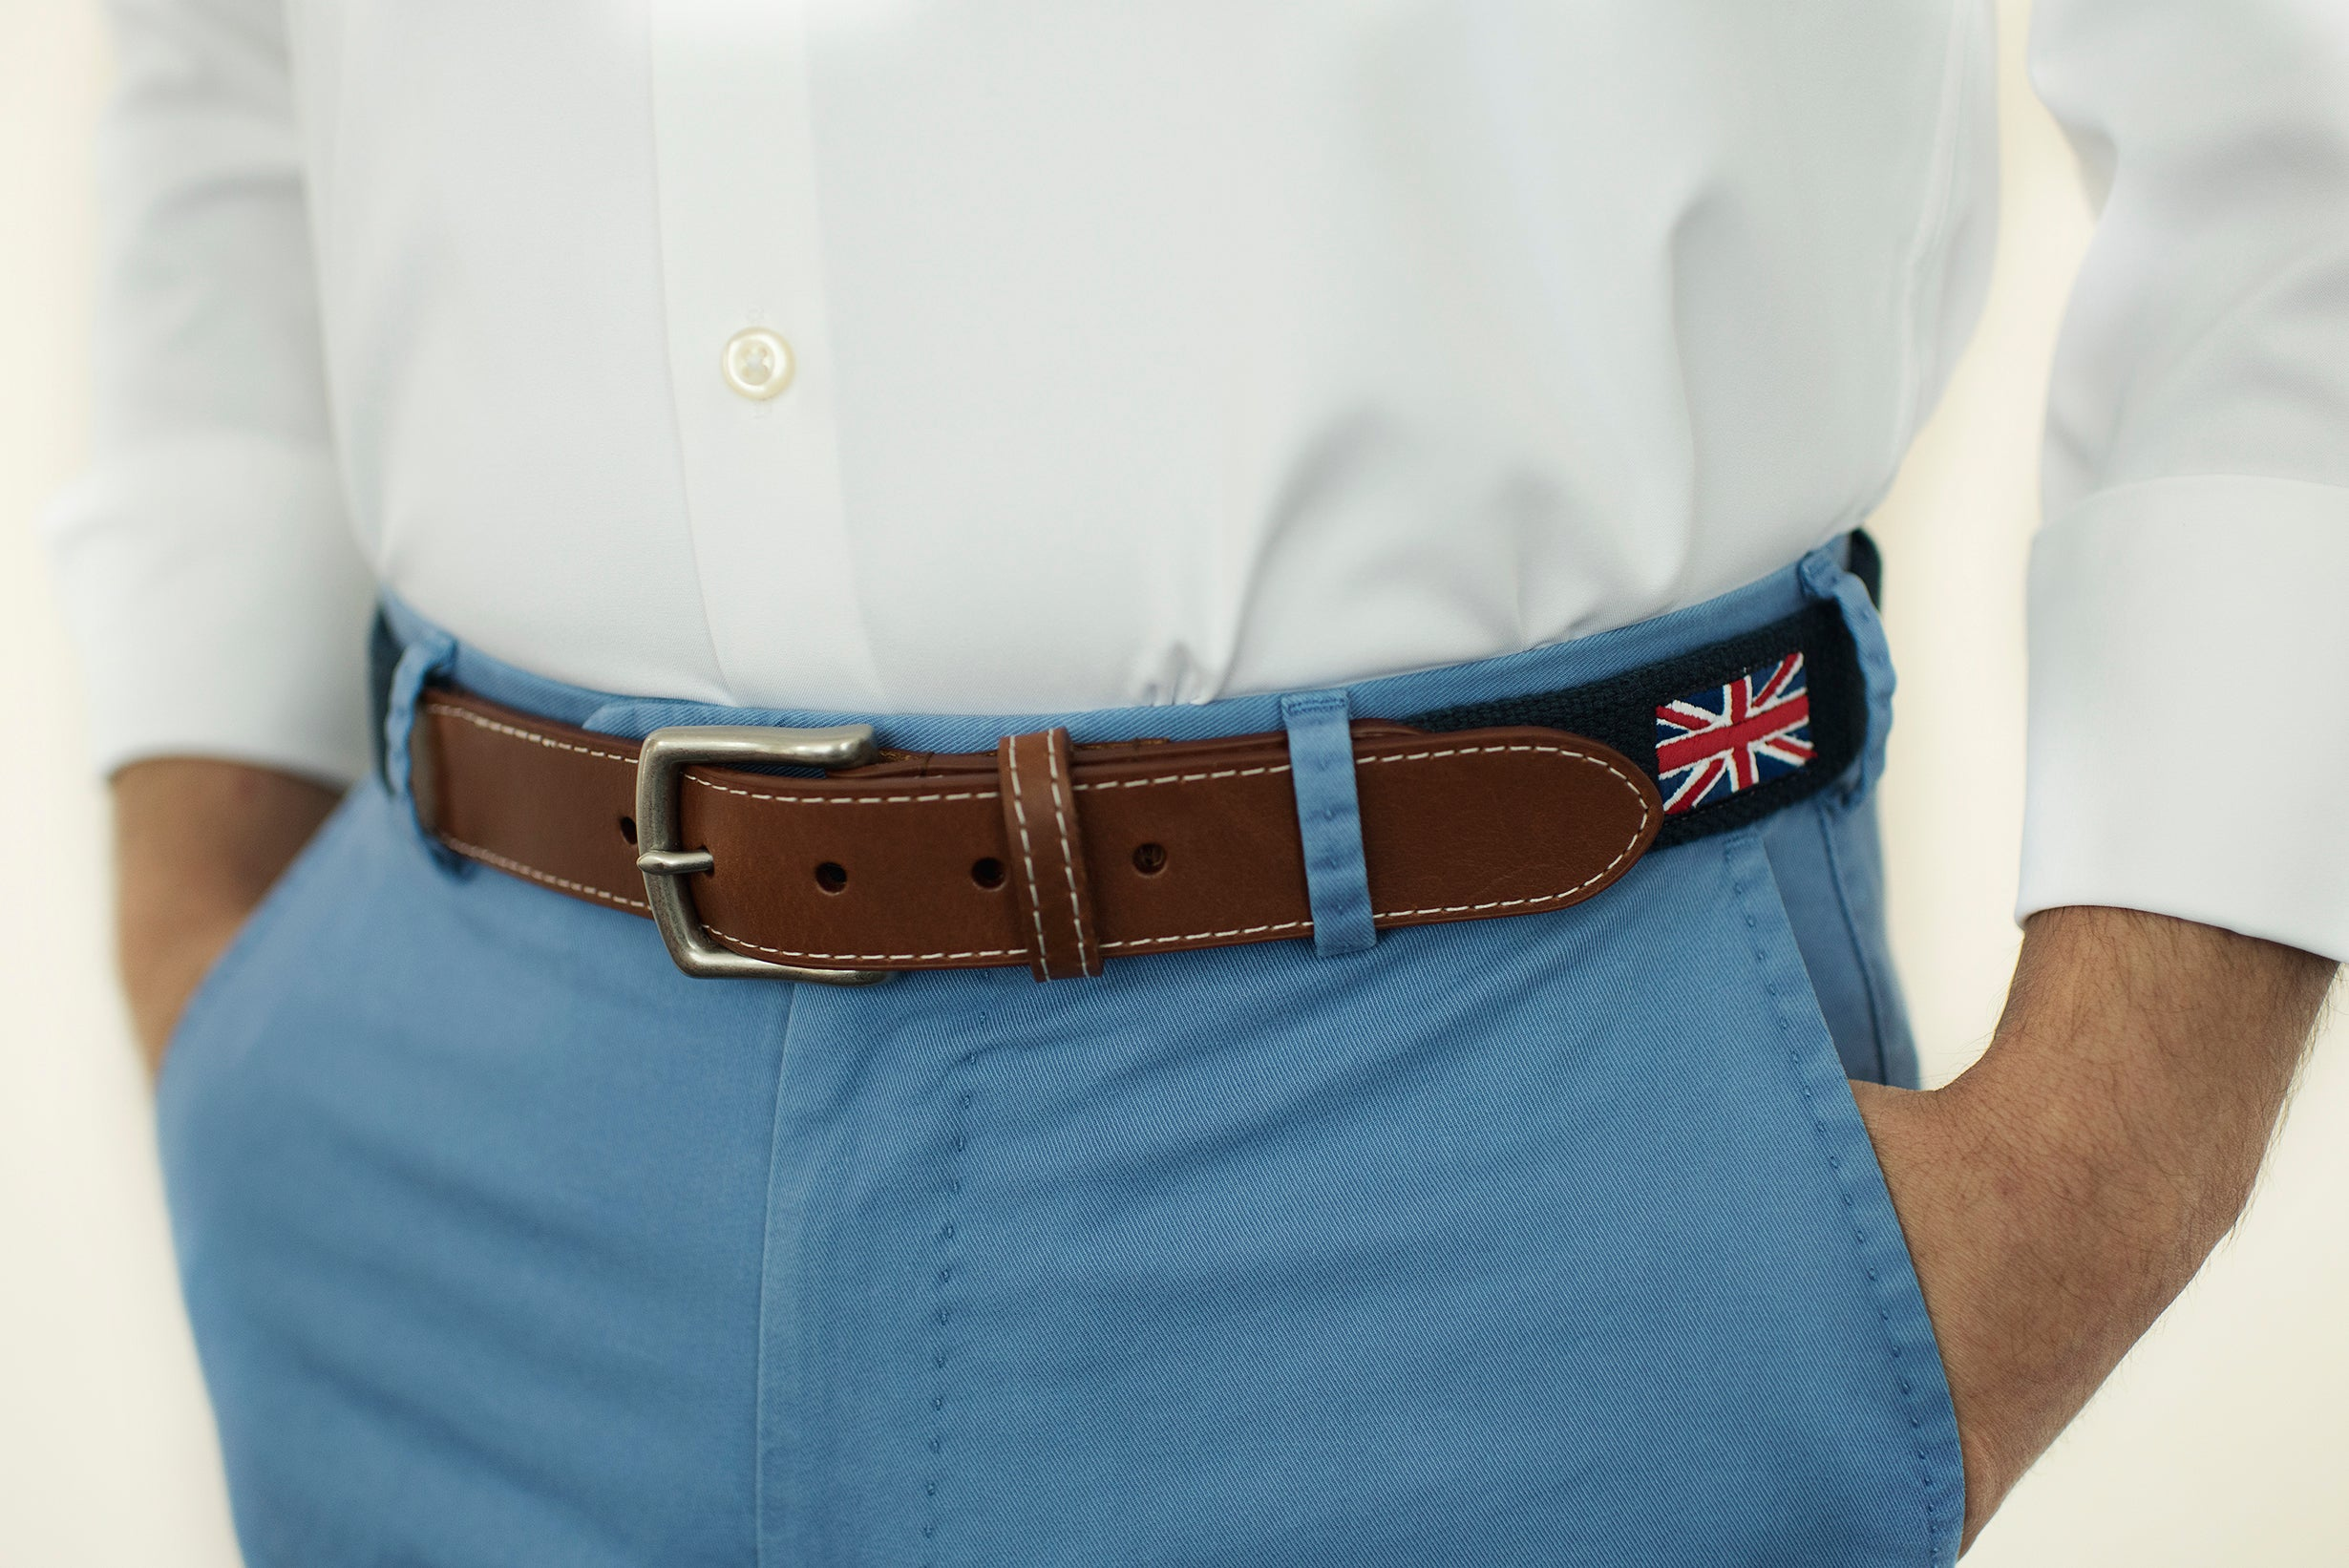 Union Jack Flag Belt, Great Britain (patriot navy)